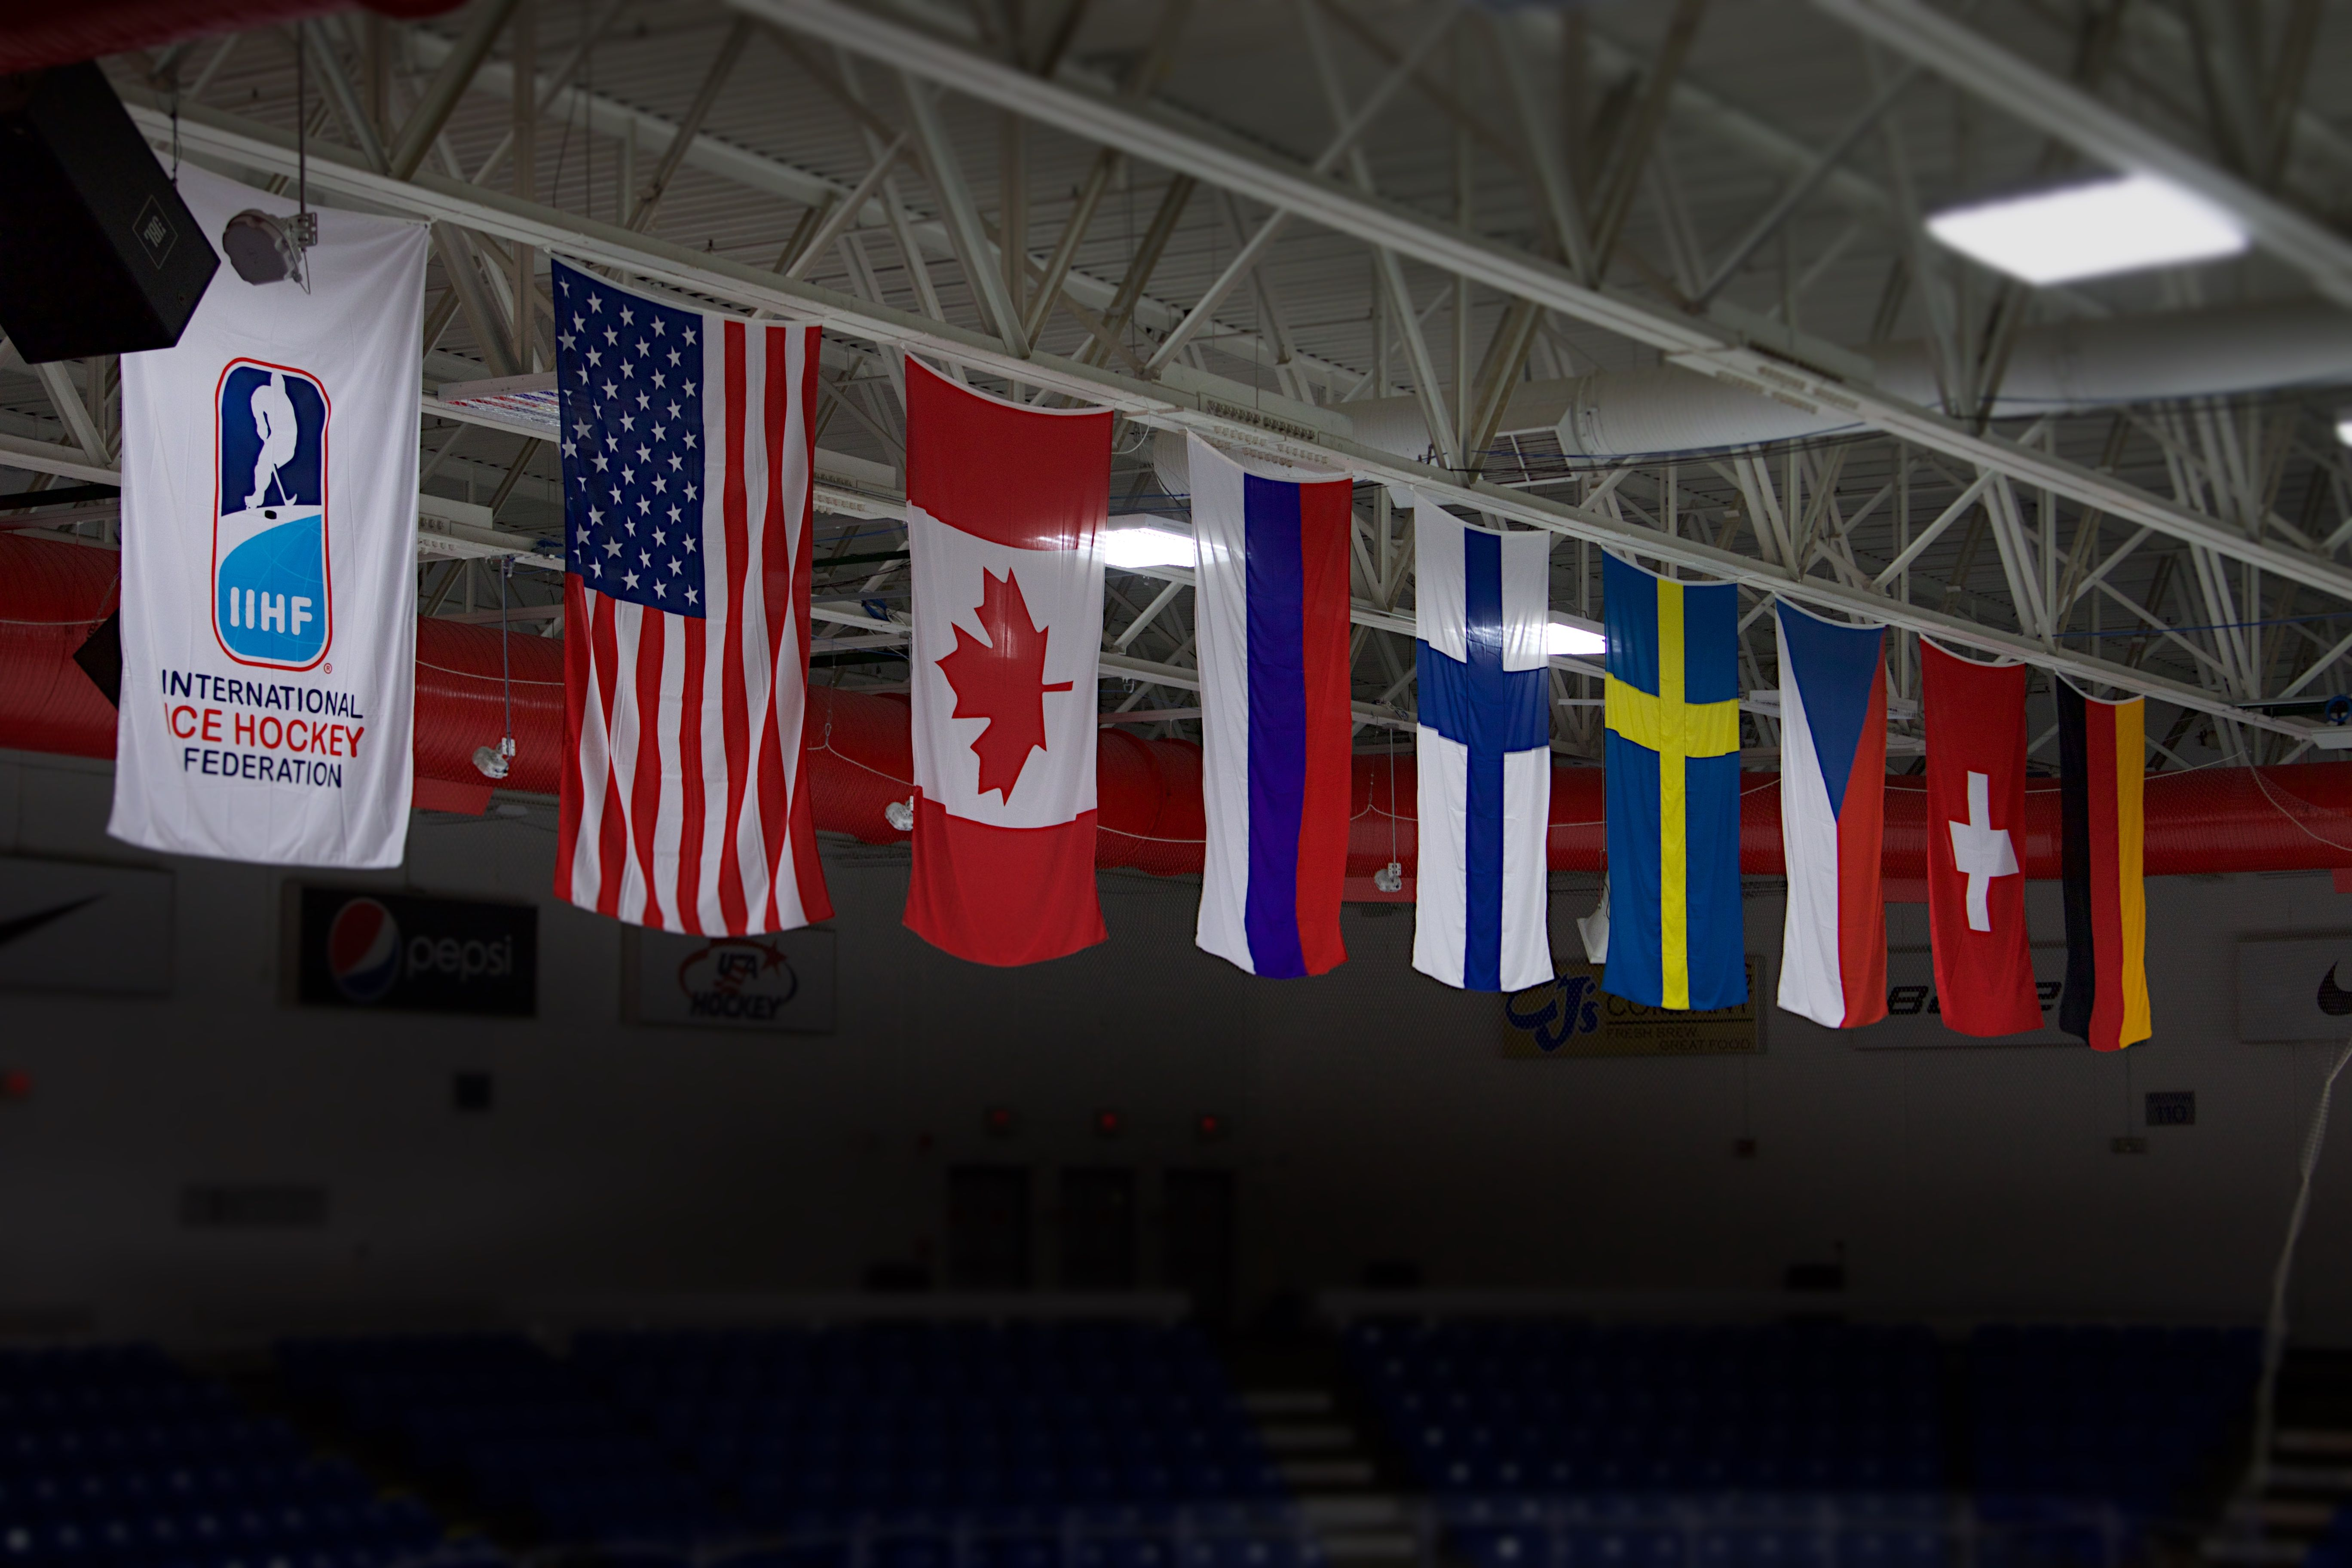 The Eight Teams That Competed In The 2017 Iihf Women S World Championship At Usa Hockey Arena In Plymouth Mich Hockey Arena Usa Hockey Women S Hockey